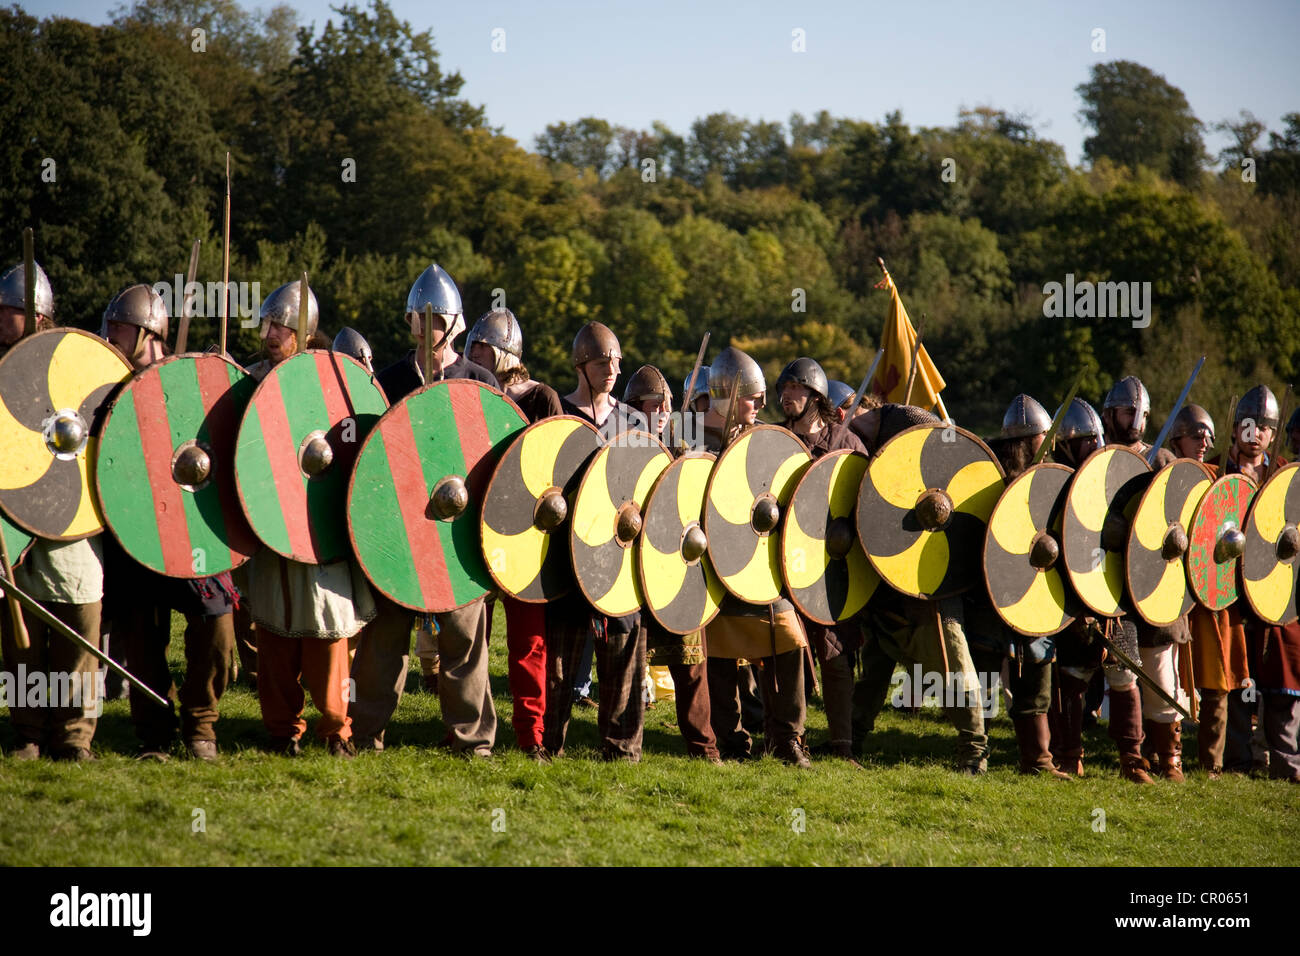 1066 Stock Photos Images Alamy Battle Story Hastings Reenactment Of East Sussex